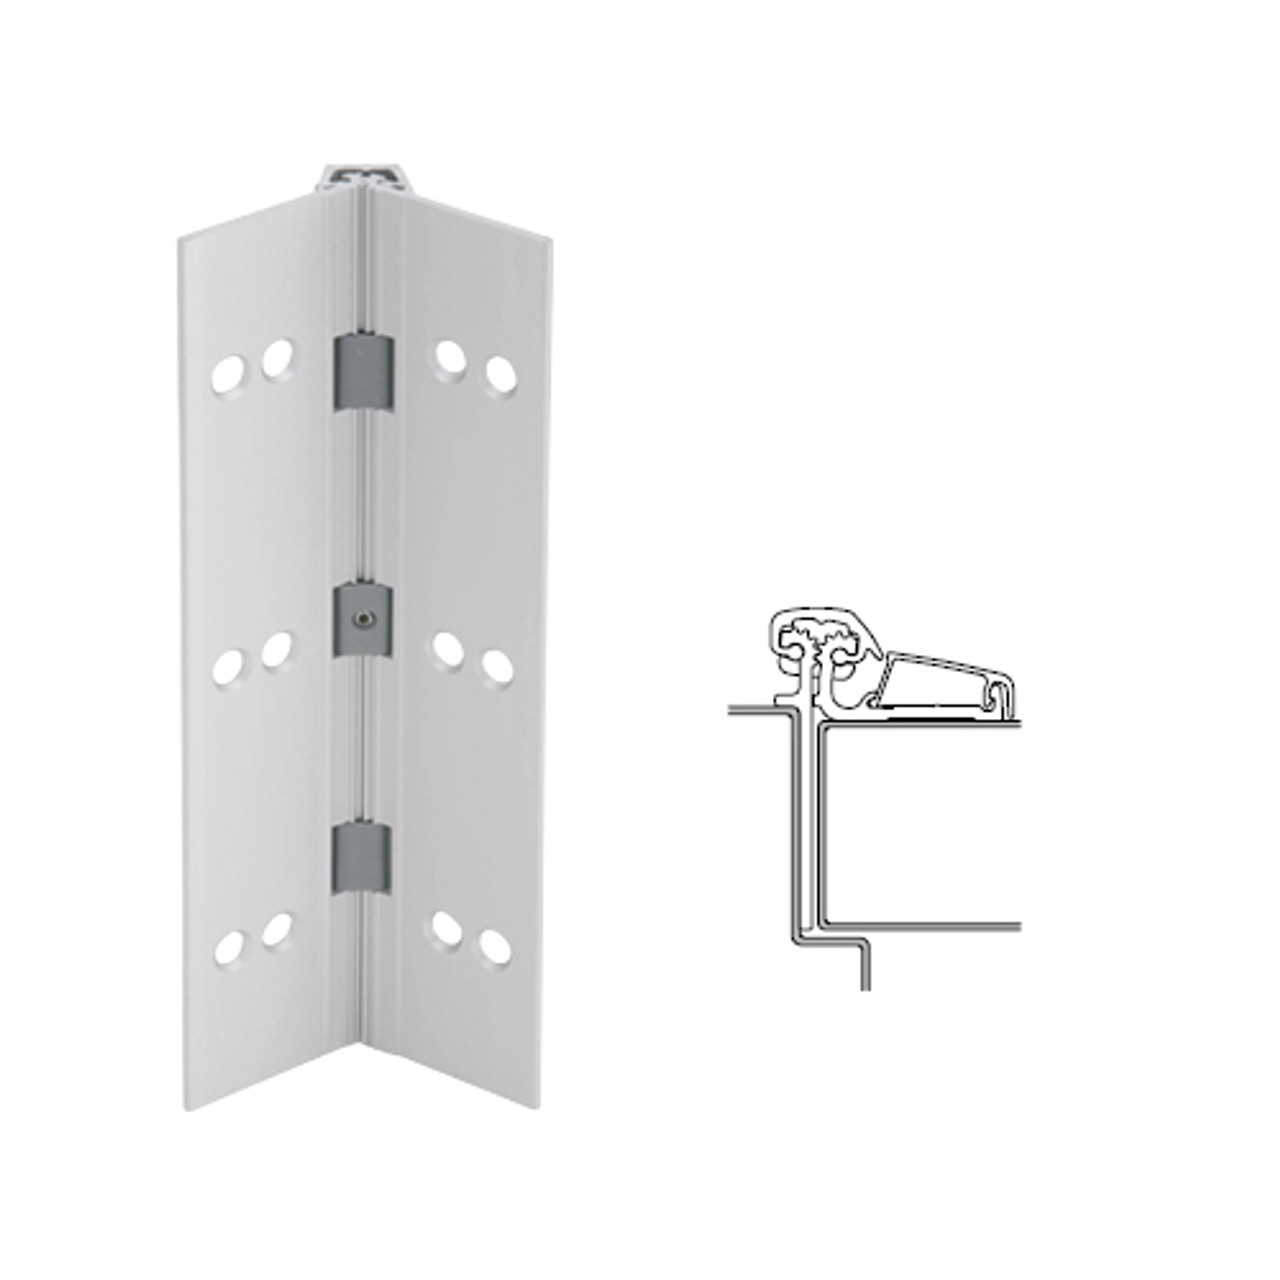 054XY-US28-85-SECHM IVES Adjustable Half Surface Continuous Geared Hinges with Security Screws - Hex Pin Drive in Satin Aluminum